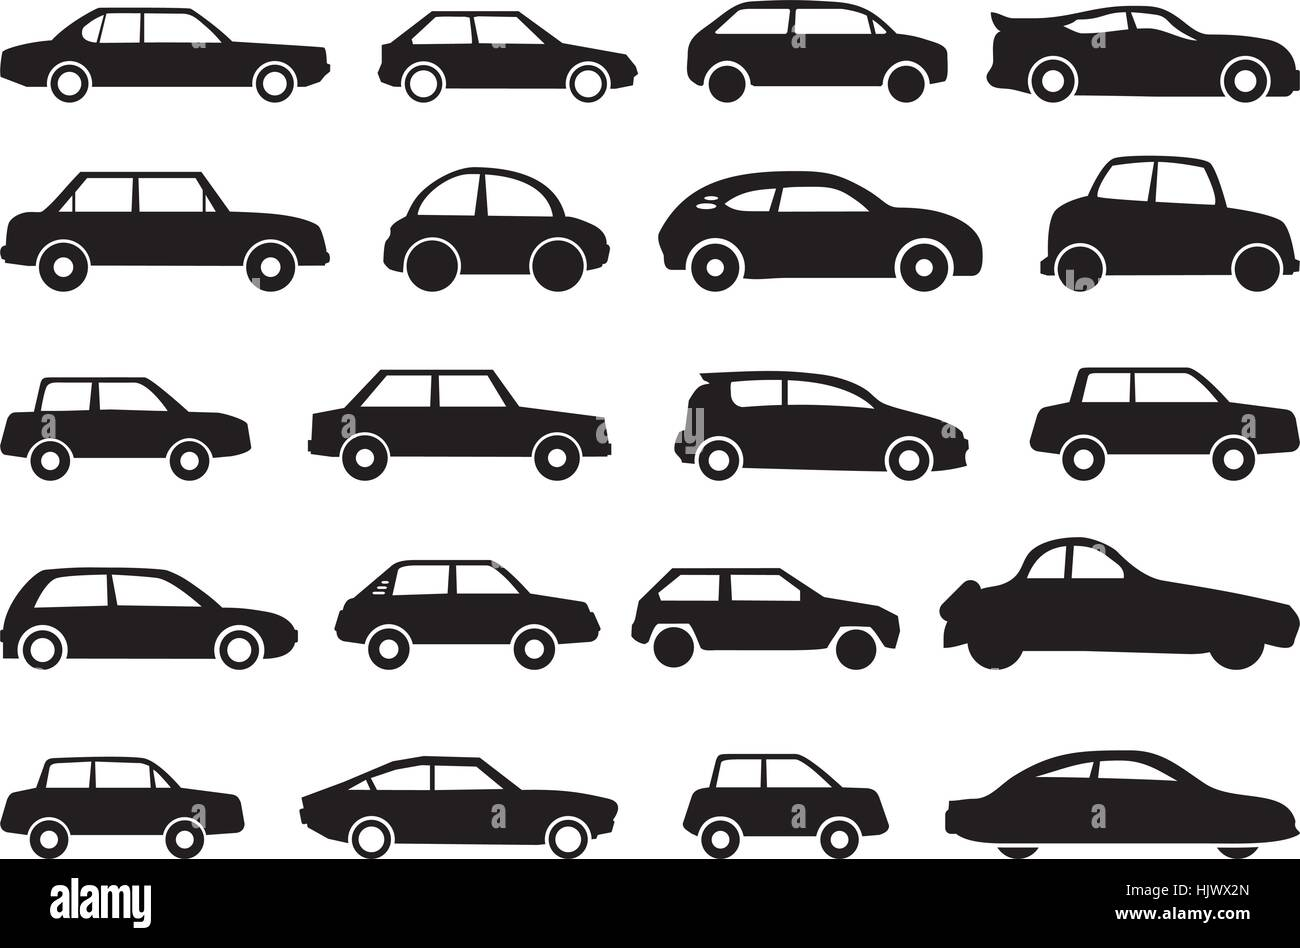 Various types of car shapes as vector graphic. - Stock Image